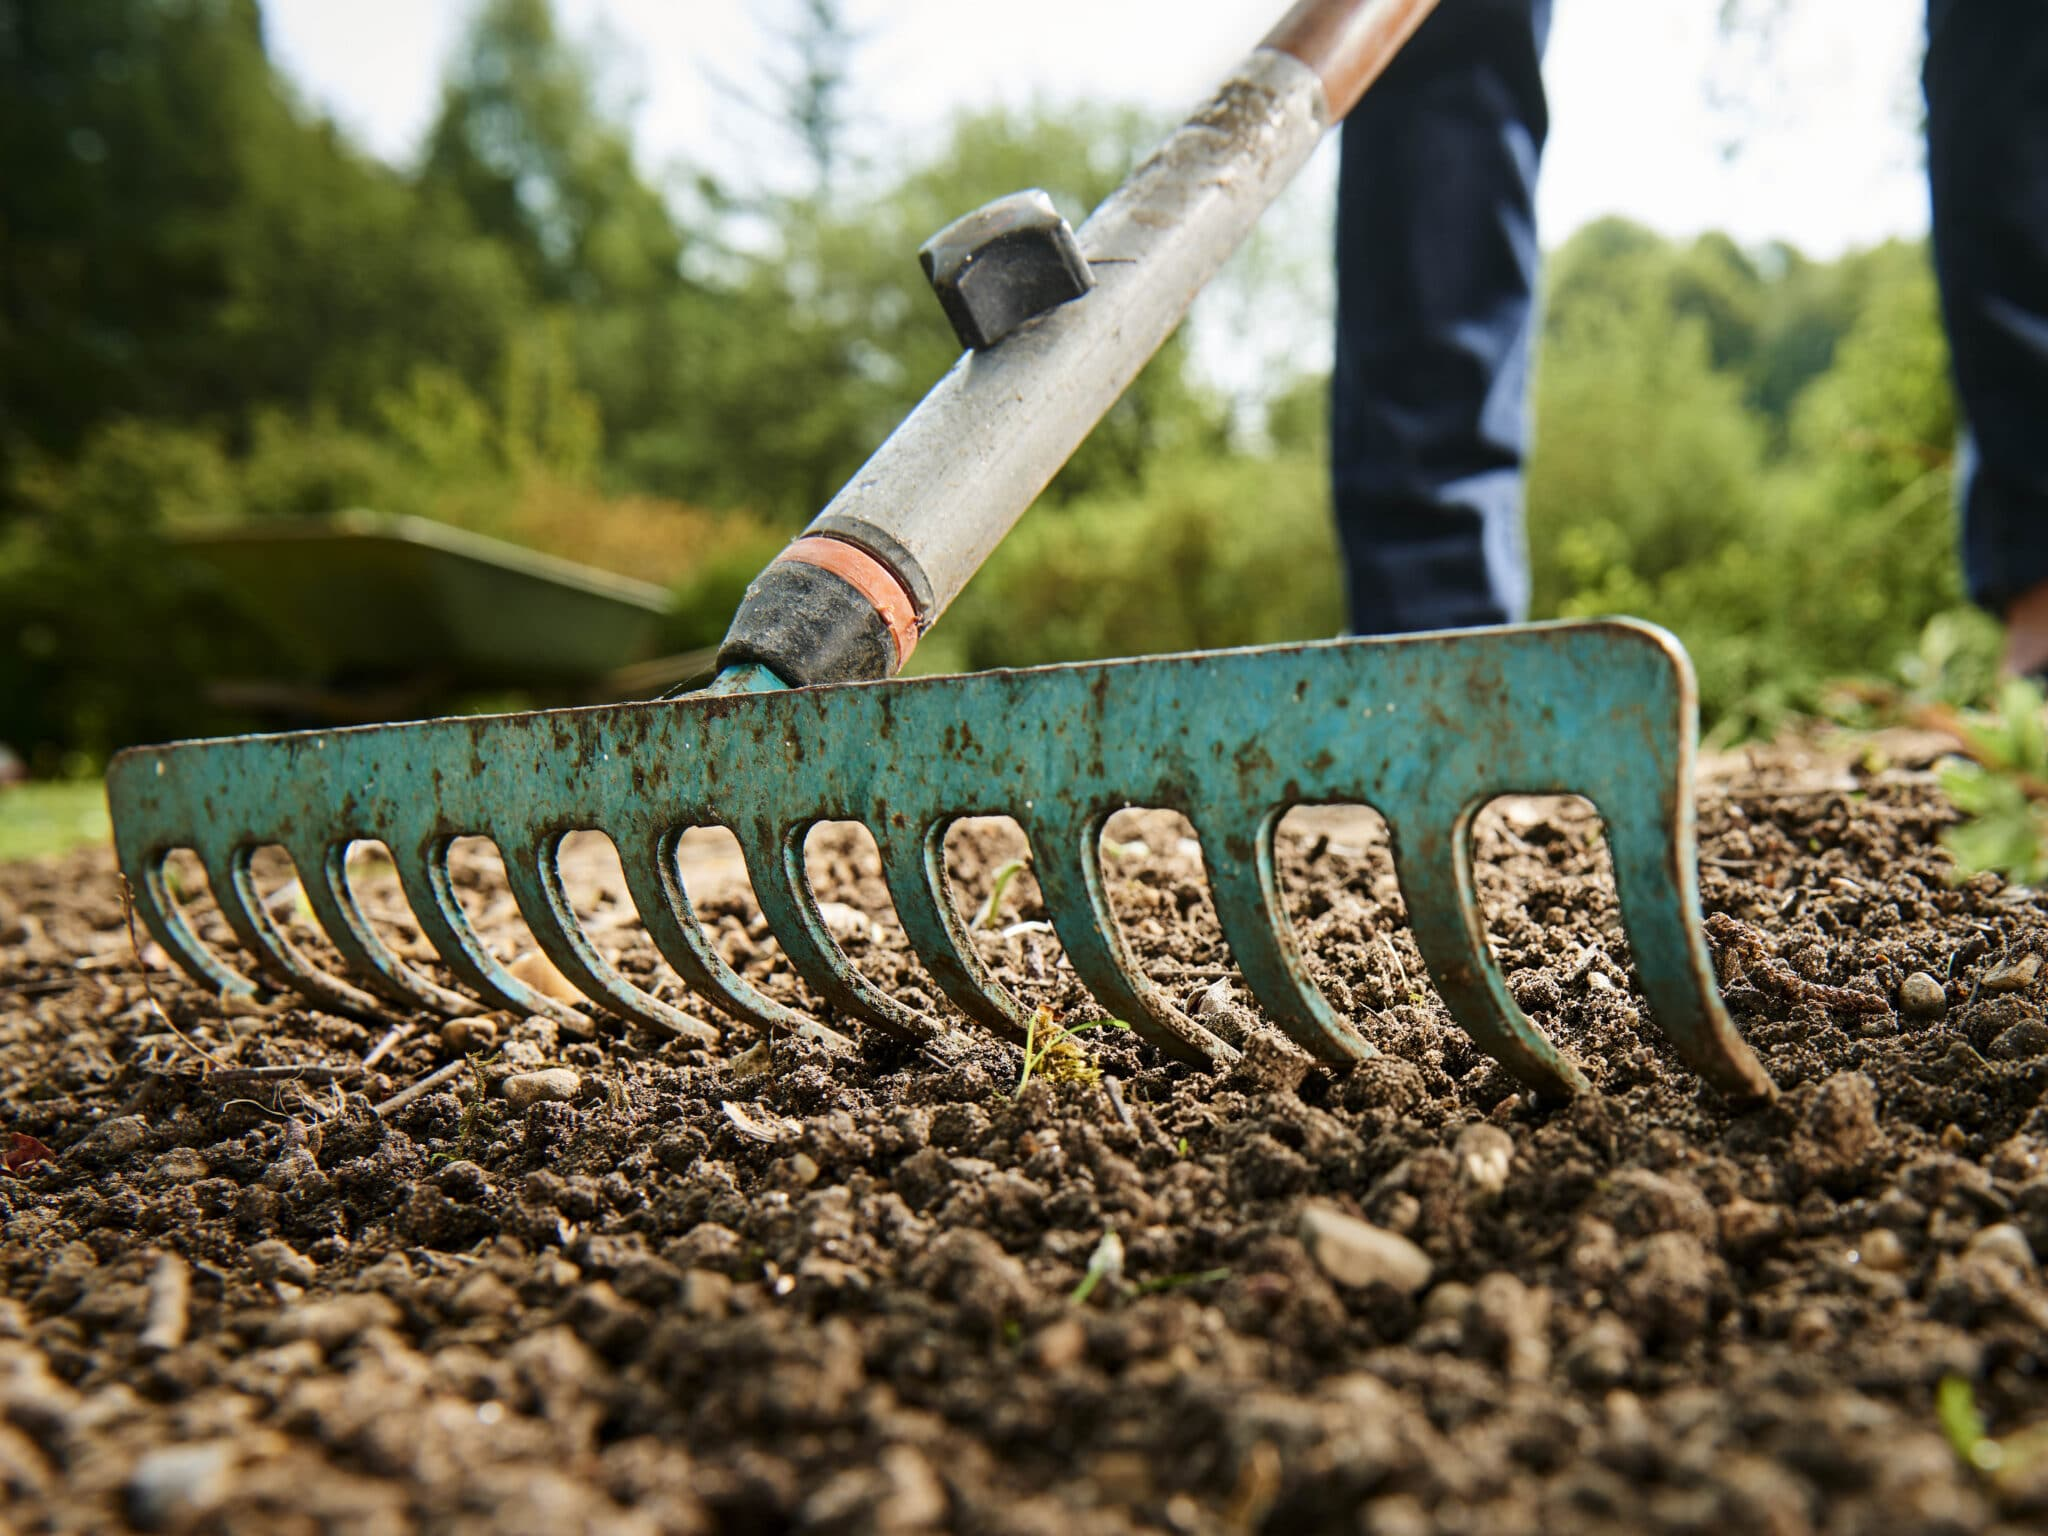 A garden rake being used to level loose soil.